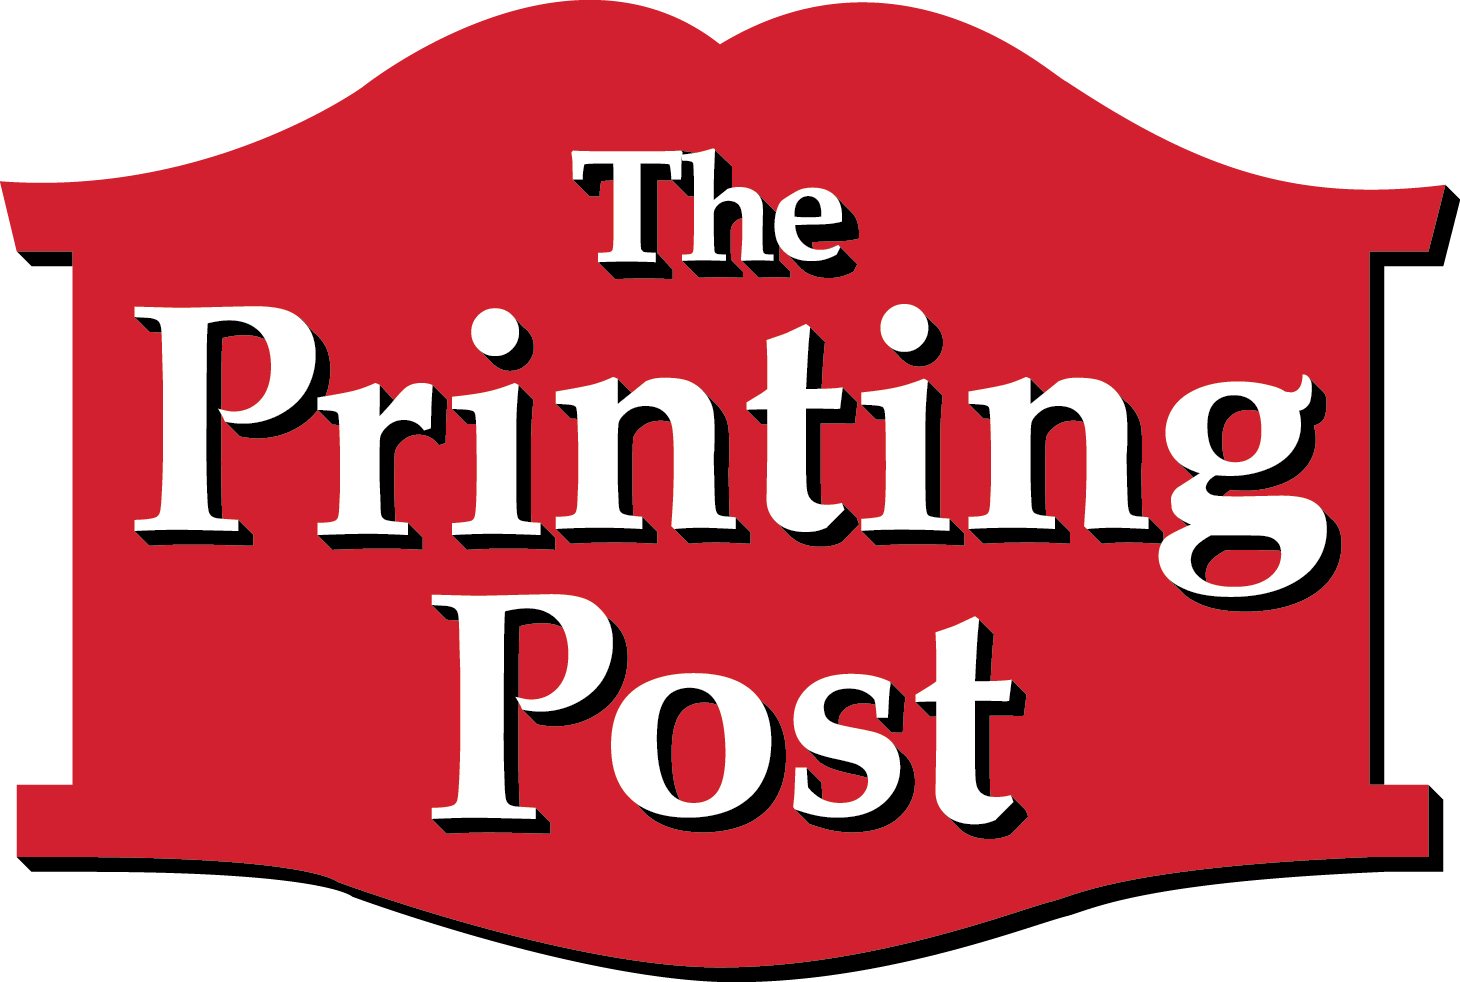 The Printing Post